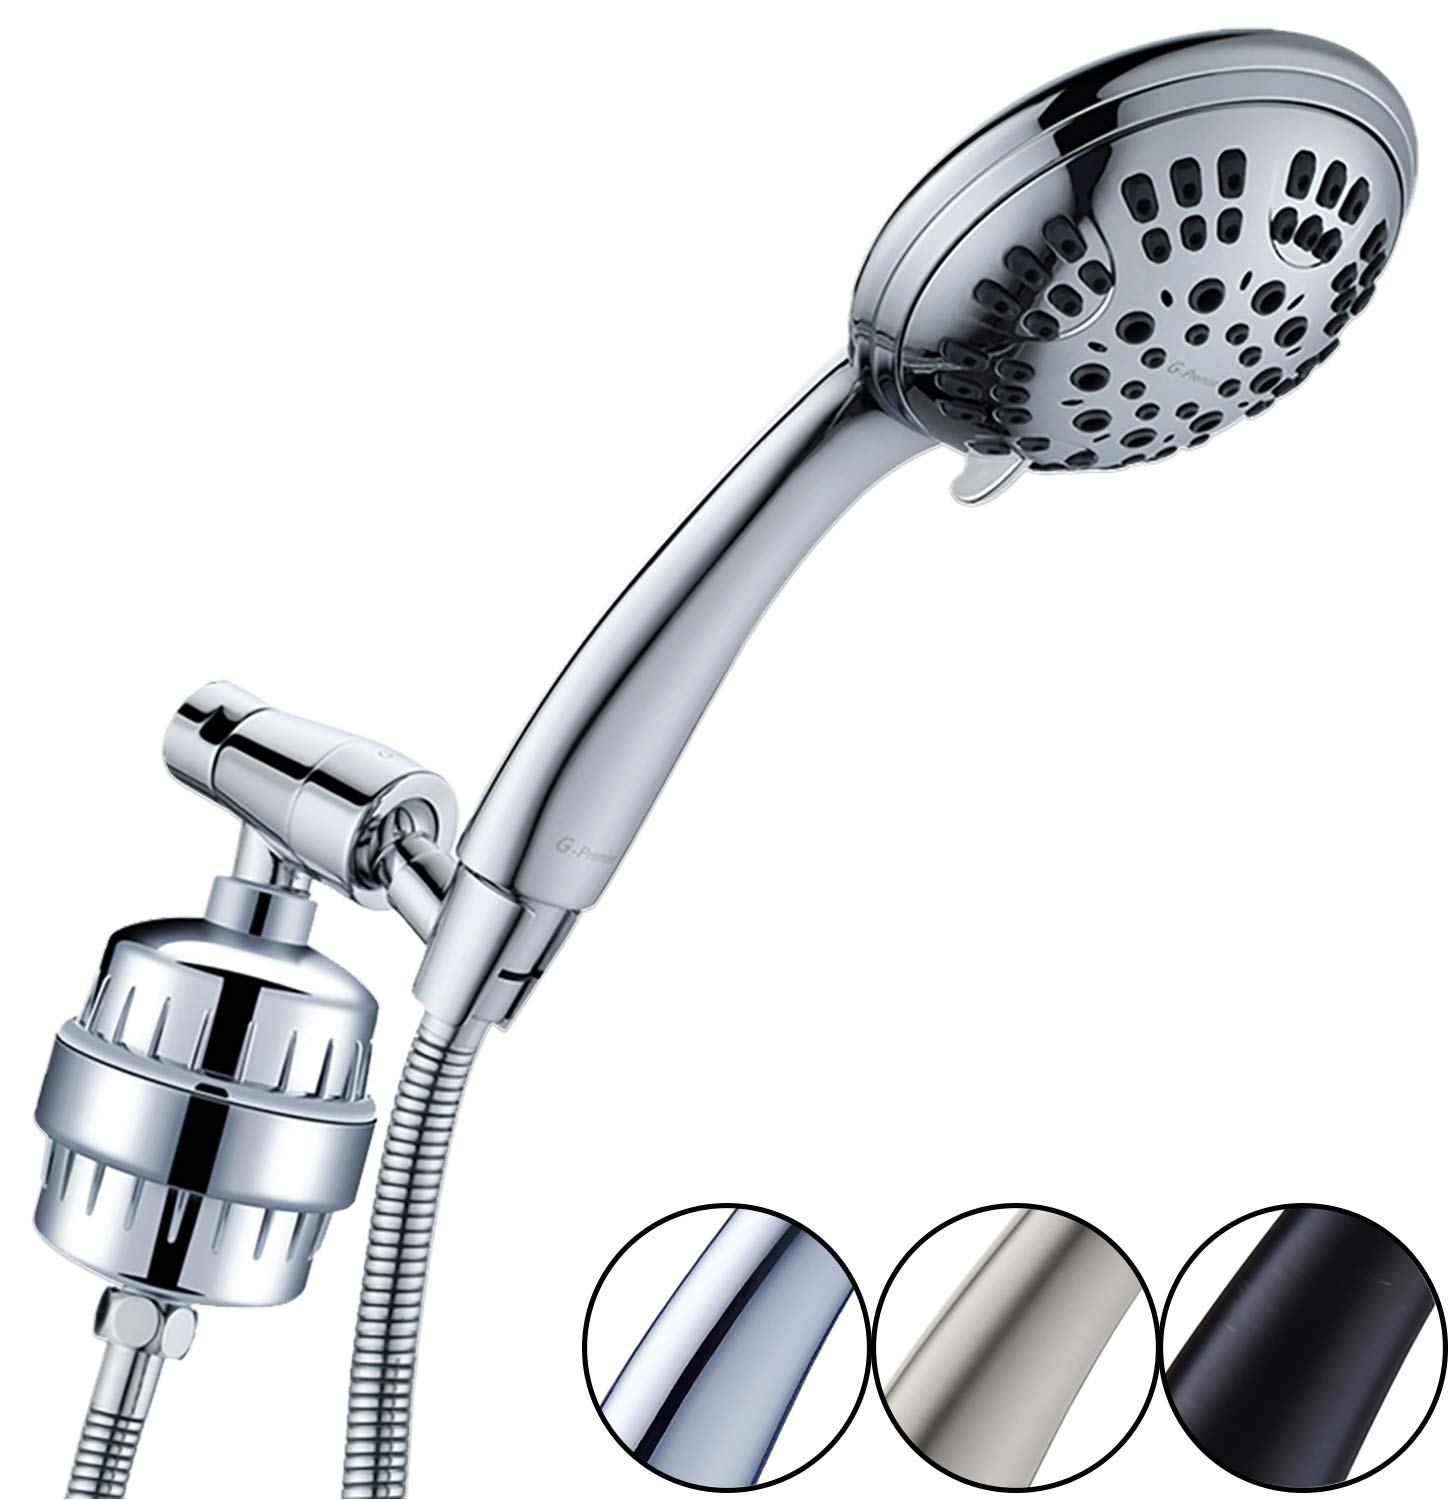 G-Promise Luxury Filtered Handheld Shower Head, Shower Set 6 Spray Showerhead with 10-Stage Filter of 2 Cartridges, Adjustable Metal Bracket, Extra Long Stretchable Hose, Chrome (Chrome with Filter) by G-Promise